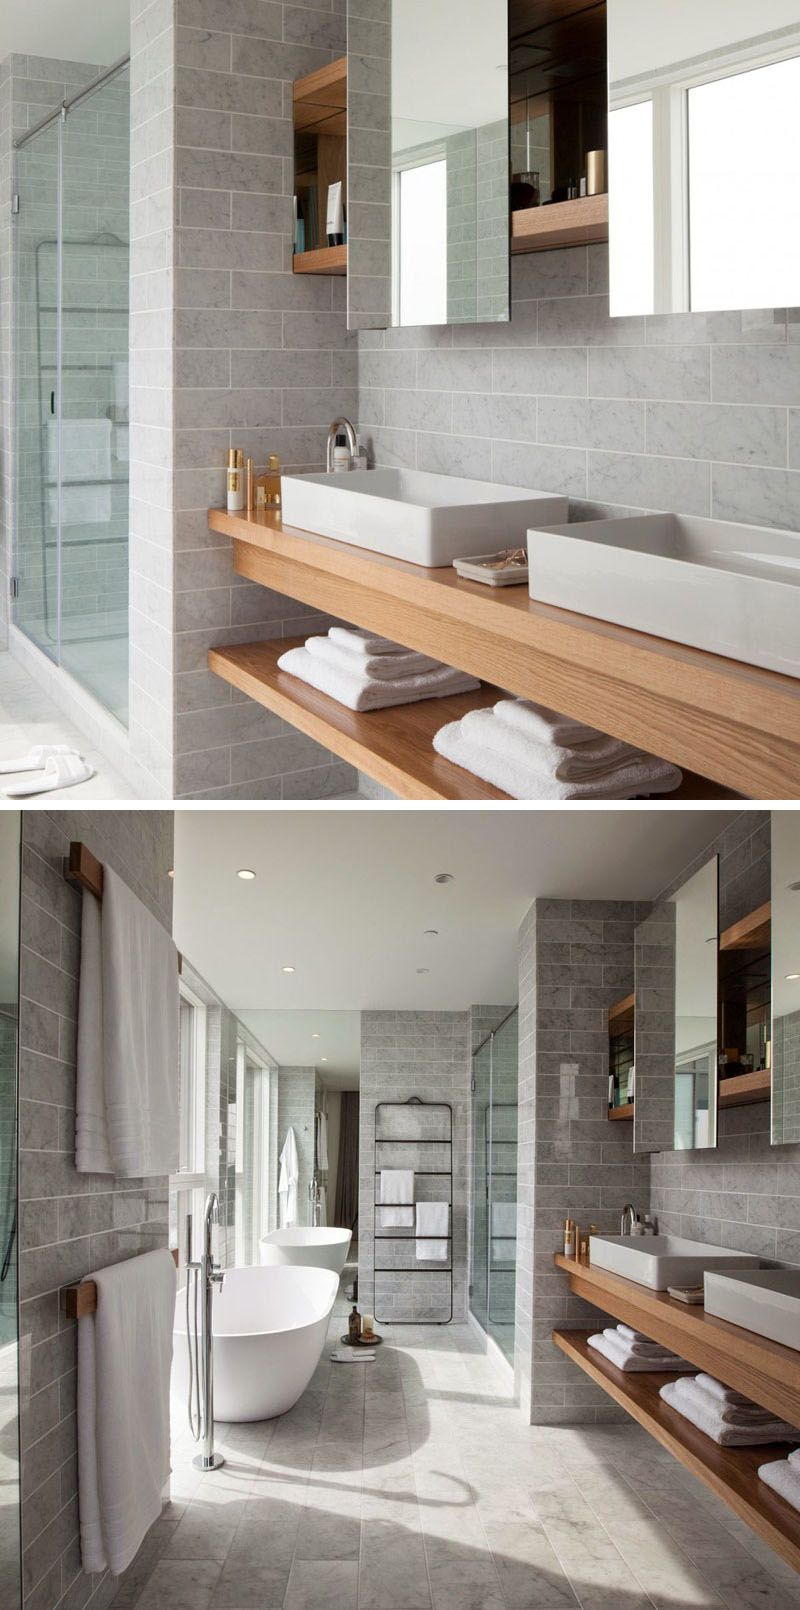 15 Examples Of Bathroom Vanities That Have Open Shelving // This